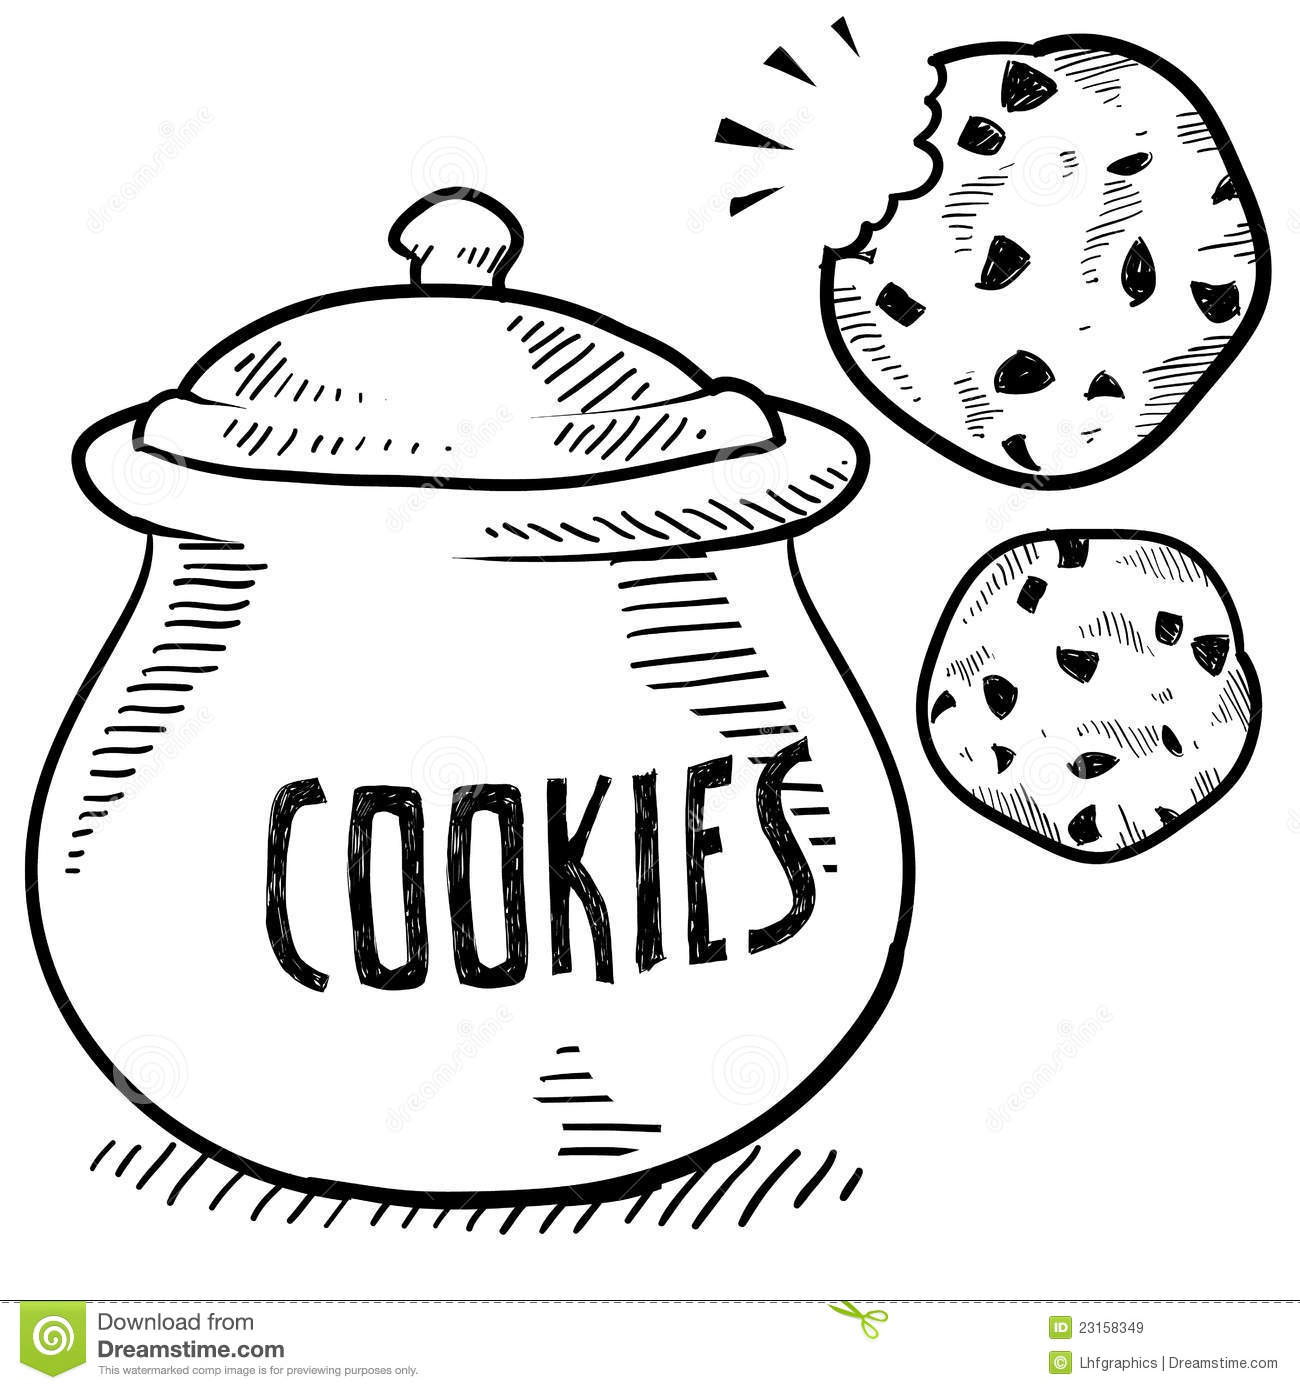 Doodle style cookie and cookie jar illustration in vector format.